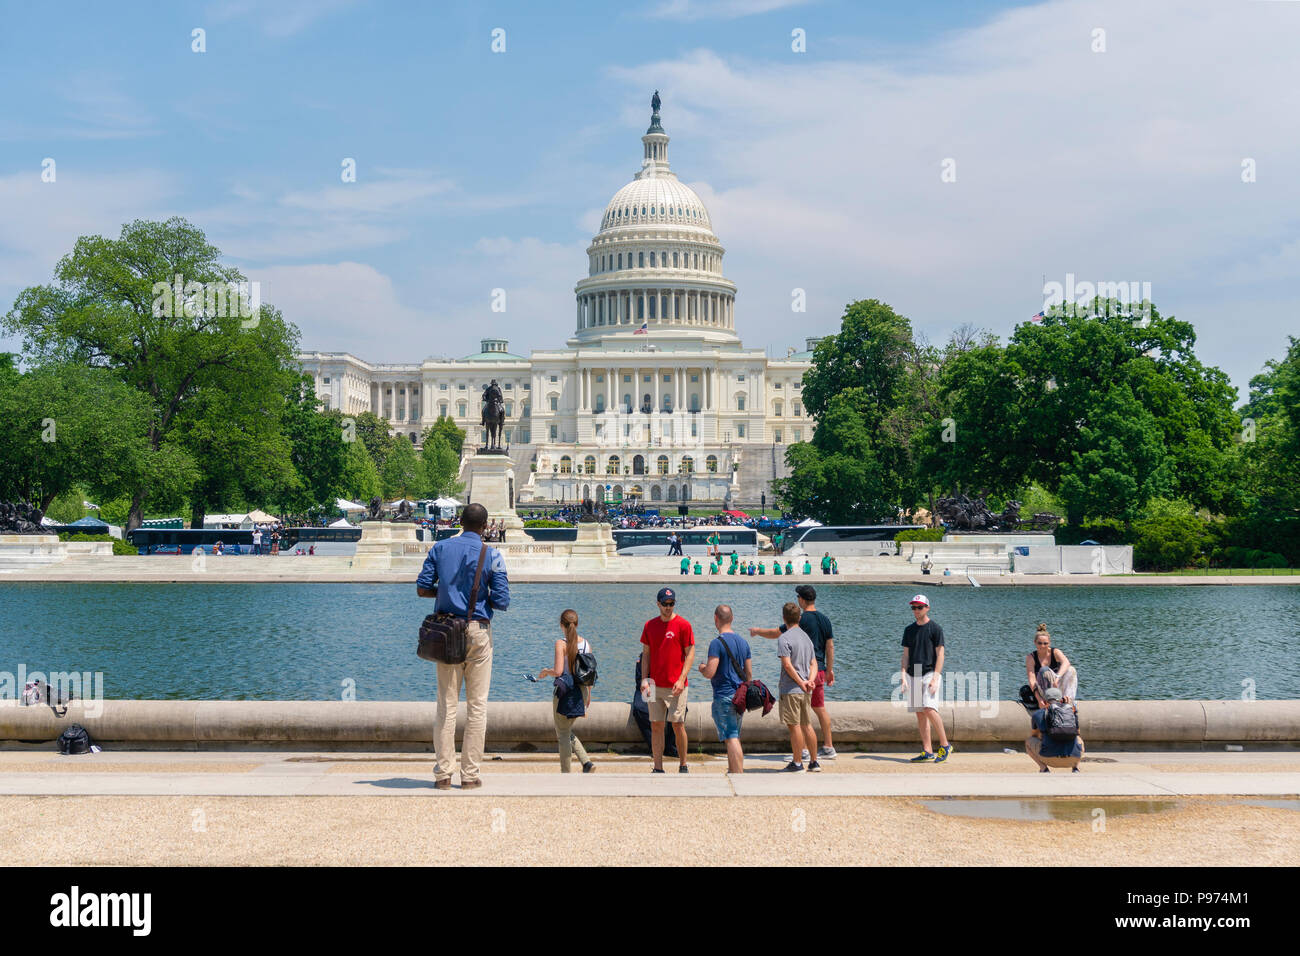 Tourists visiting the United States Capitol. It is the home of the United States Congress - Stock Image